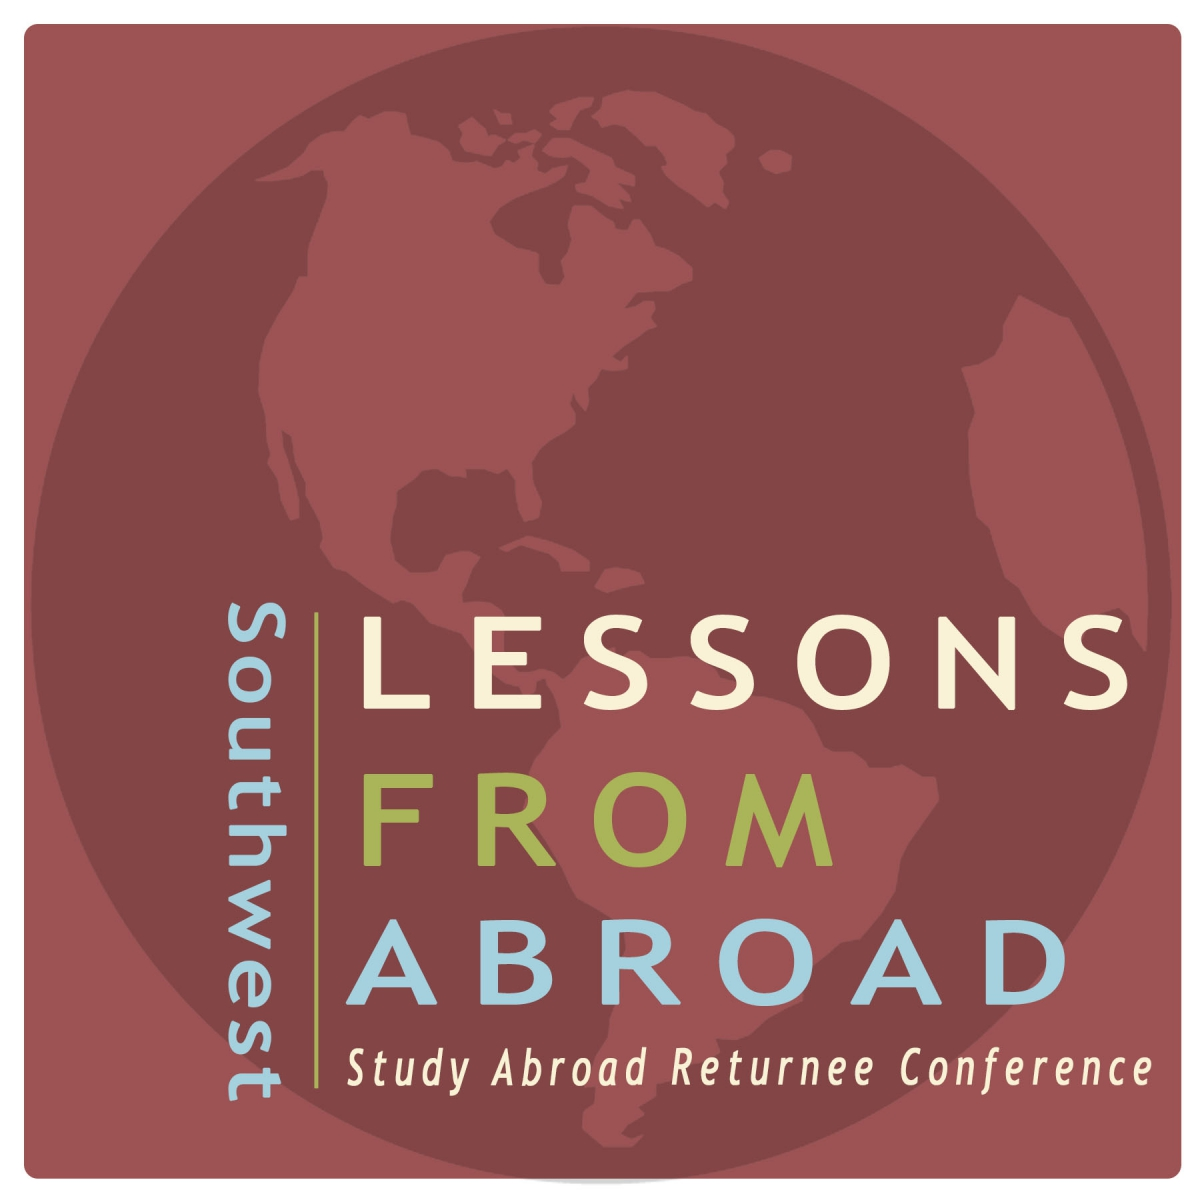 Southwest Lessons From Abroad, Study Abroad Returnee Conference